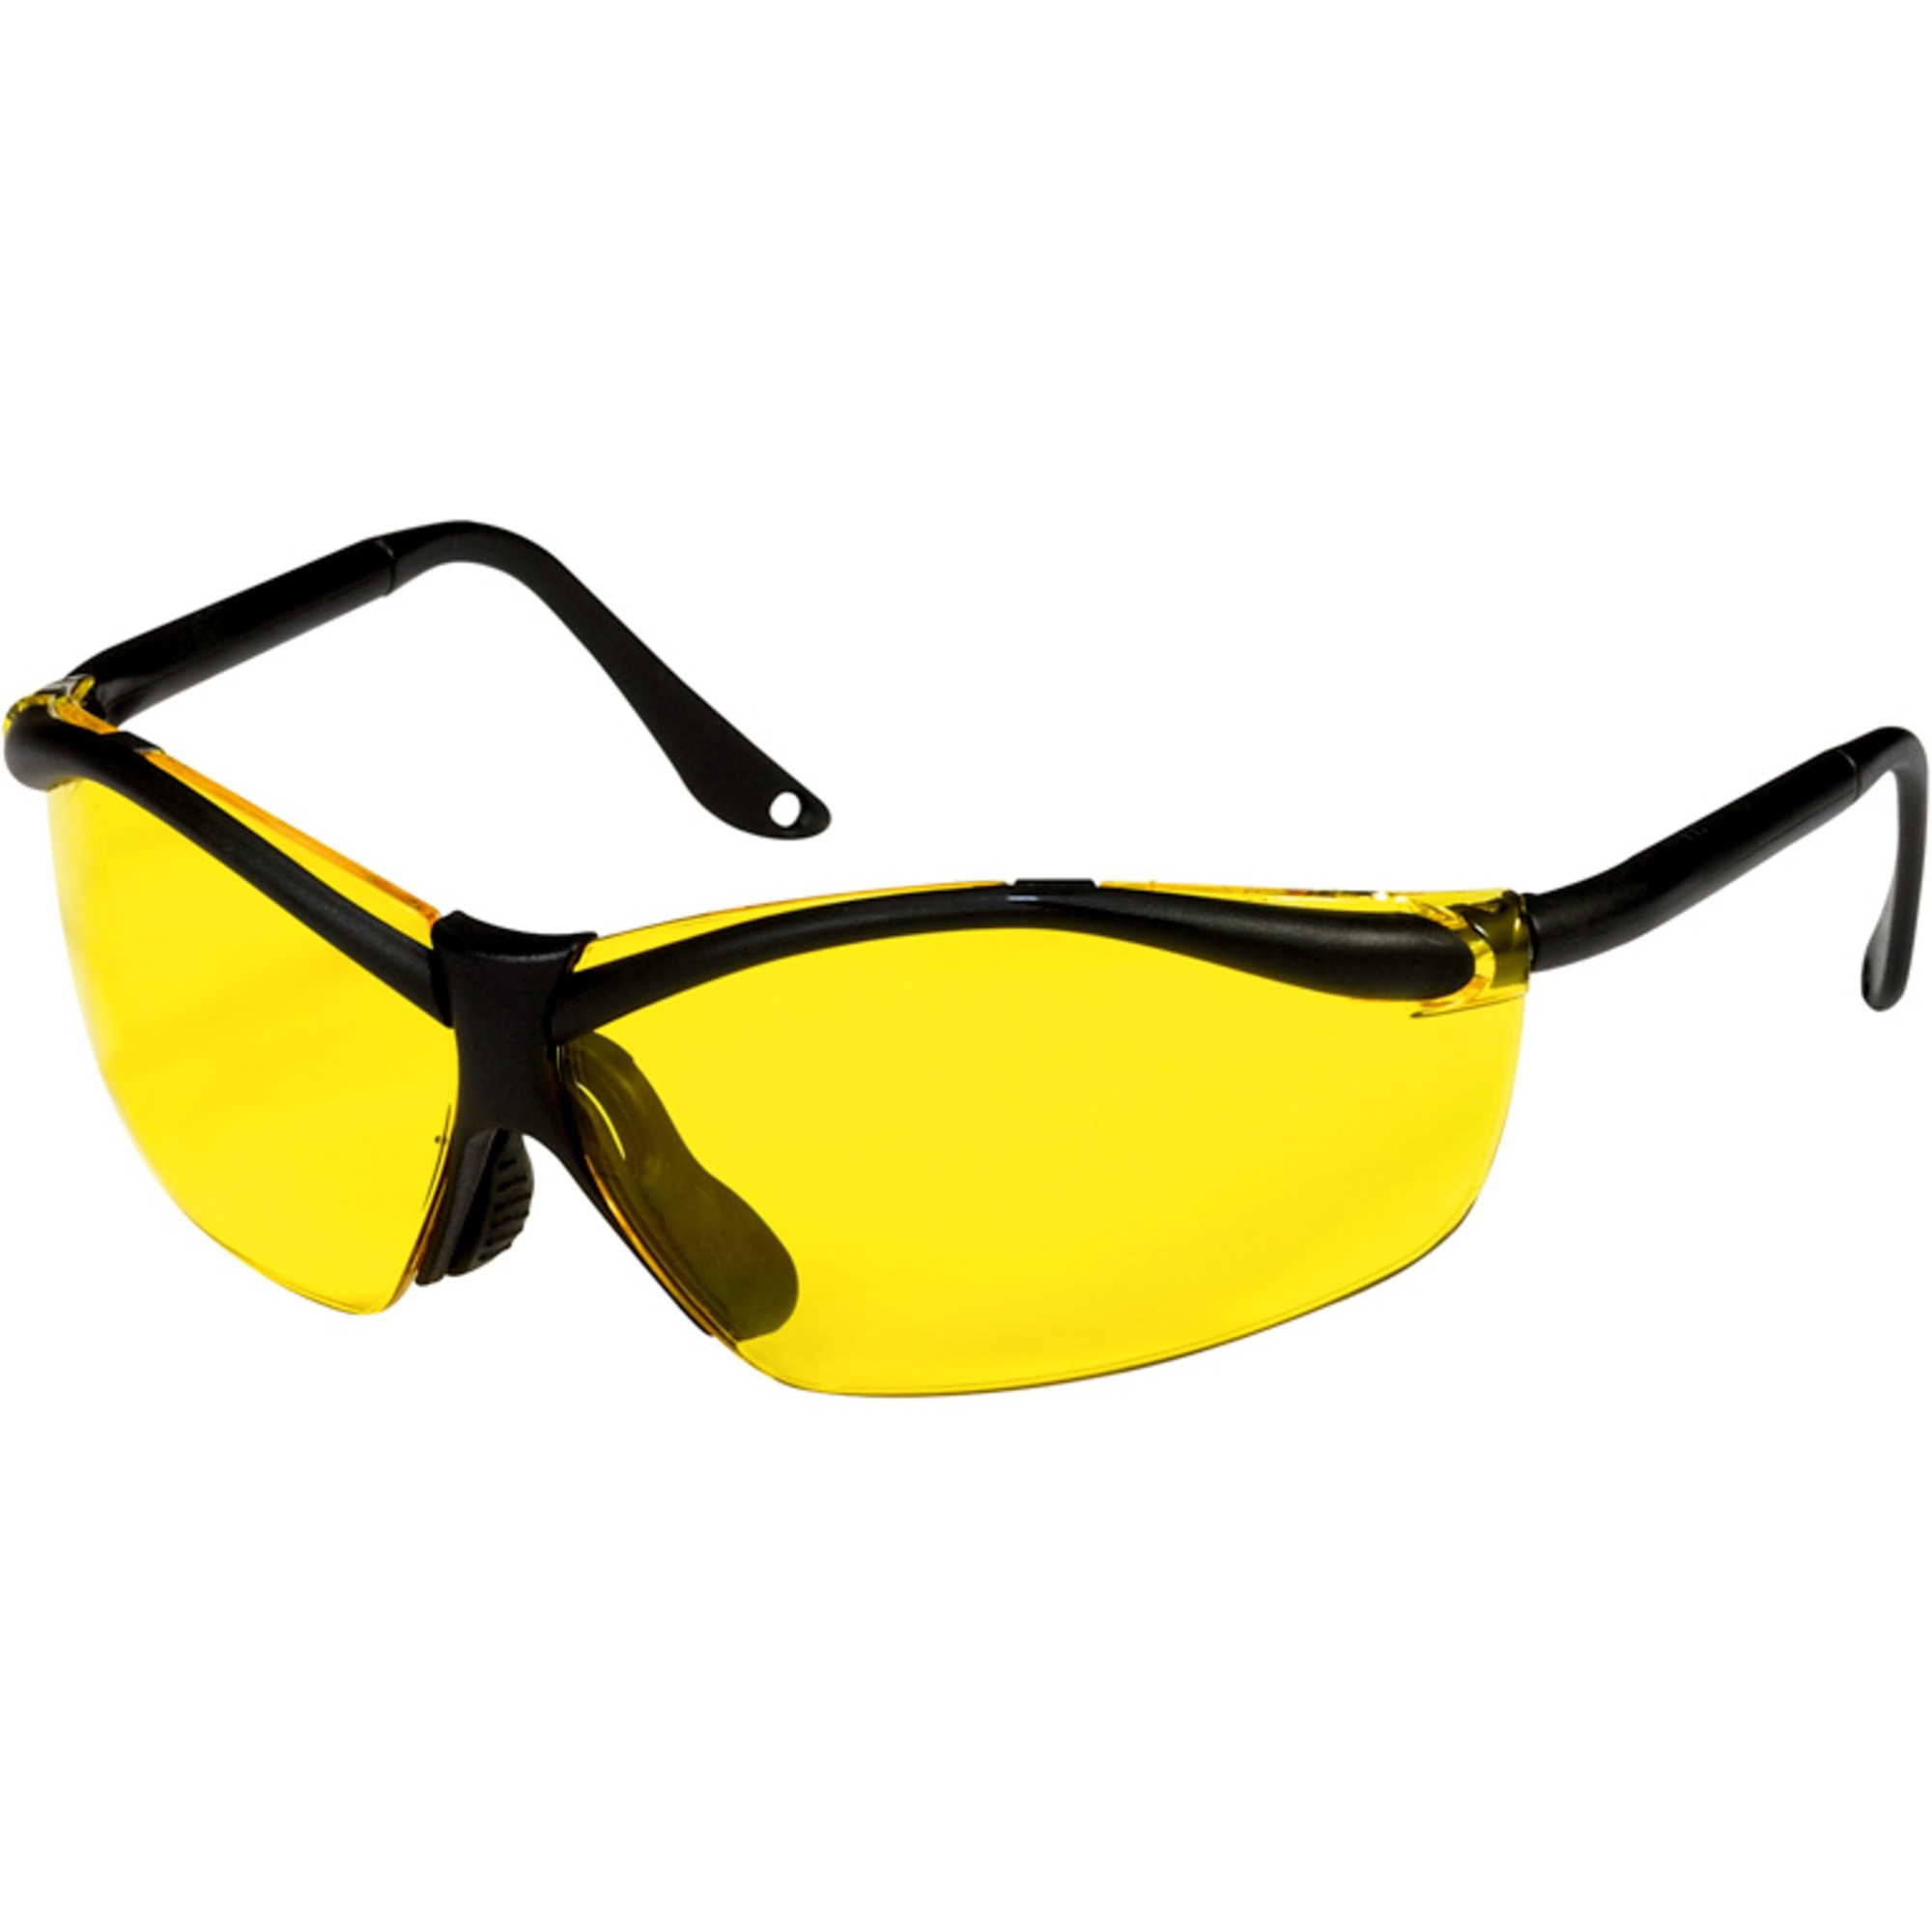 3M X-Factor 4 Safety Glasses by 3M